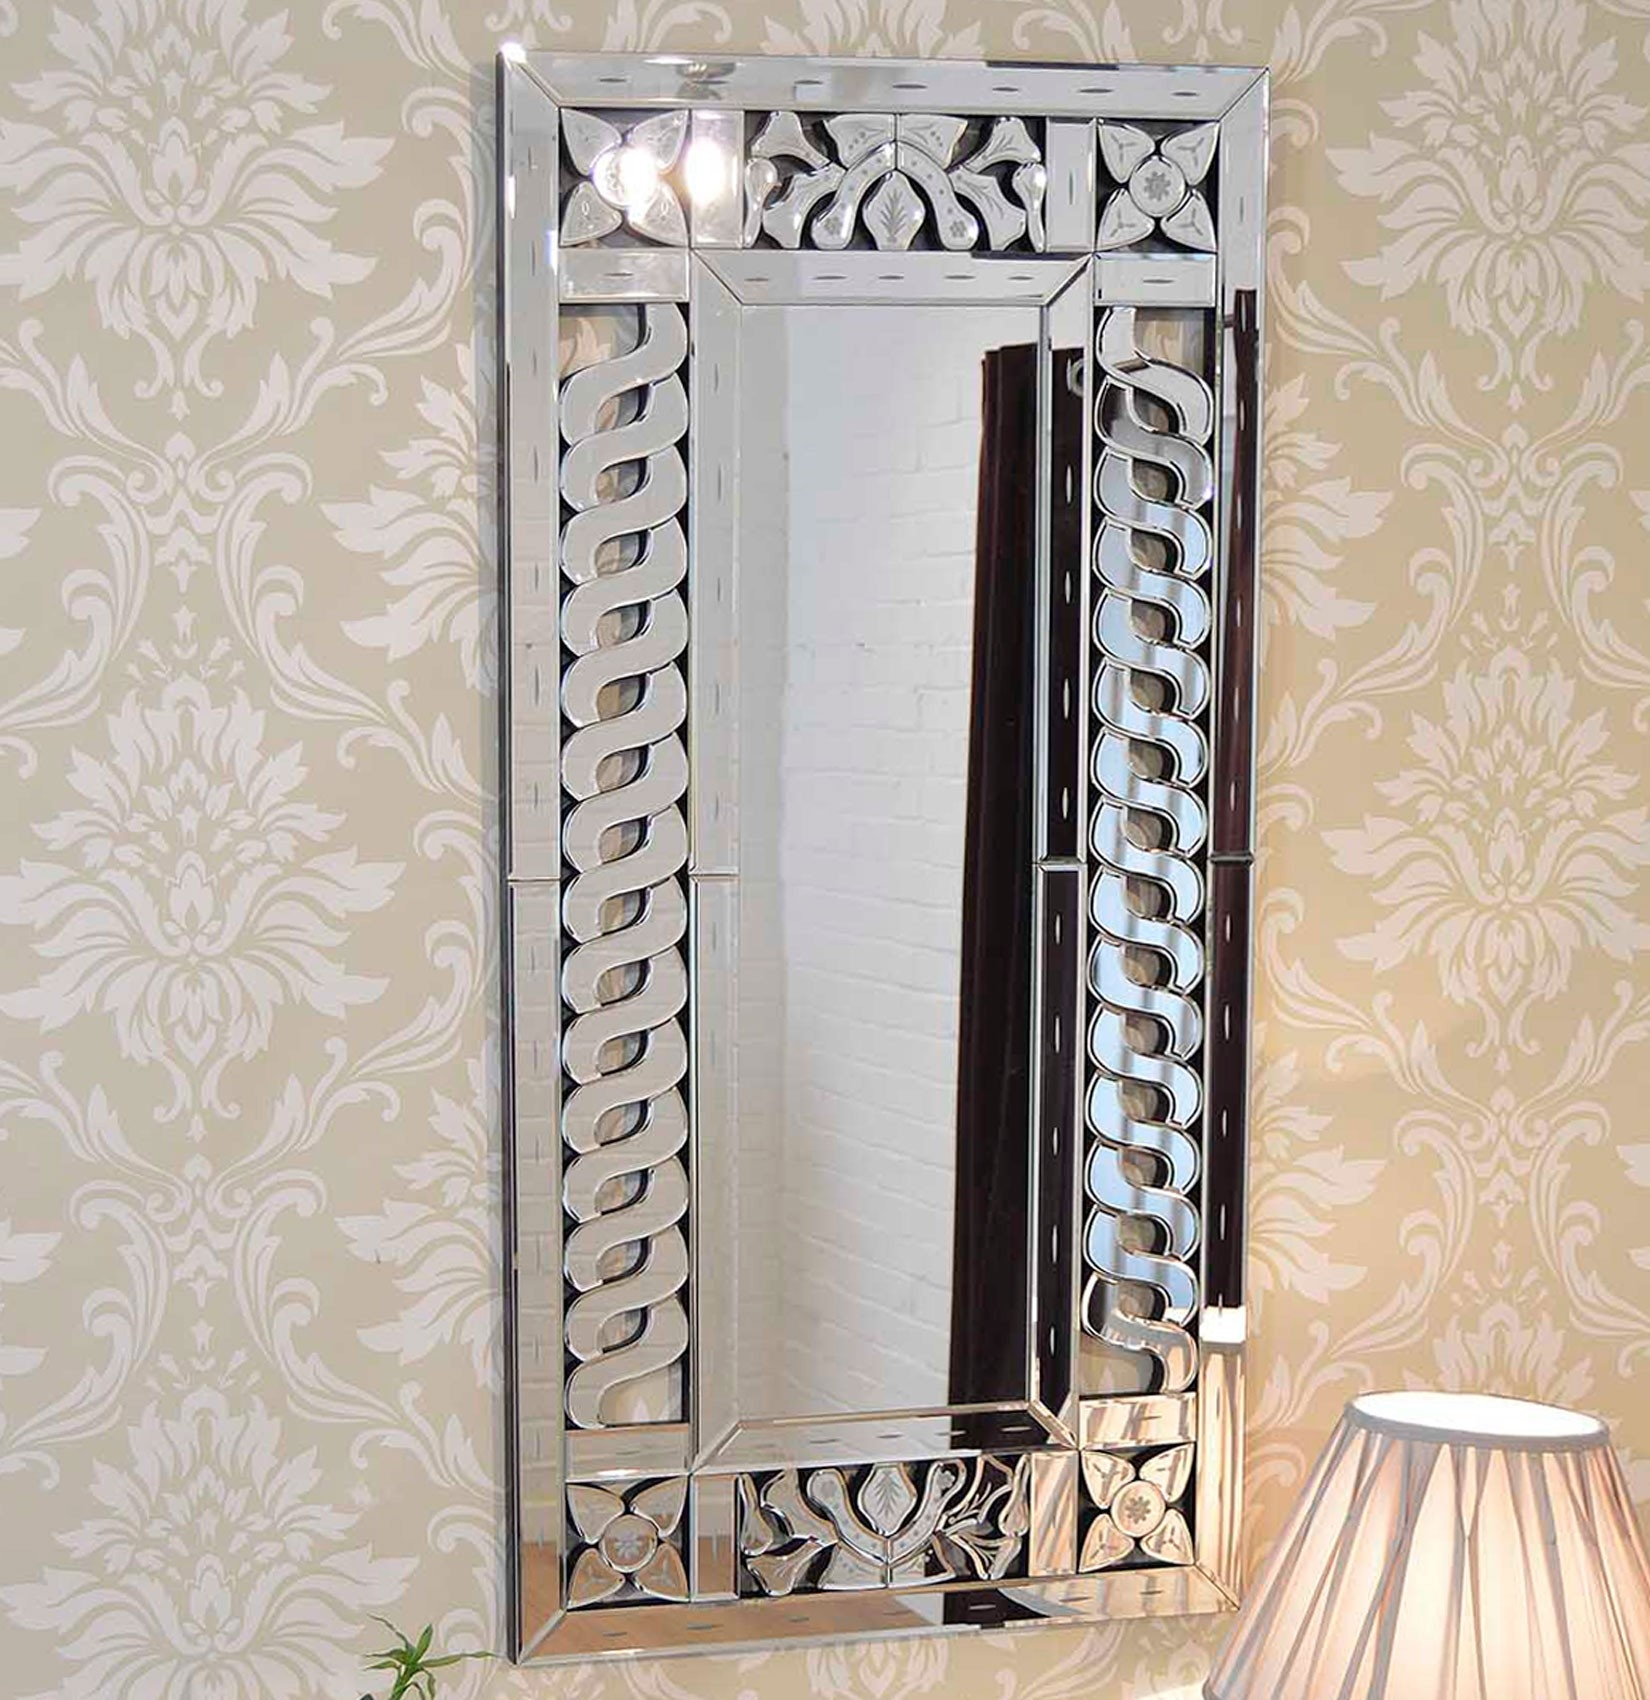 Beautiful Modern Frameless Venetian Wall Mirror 4ftx2ft 120cmx60cm Regarding Rectangular Venetian Mirror (View 11 of 15)